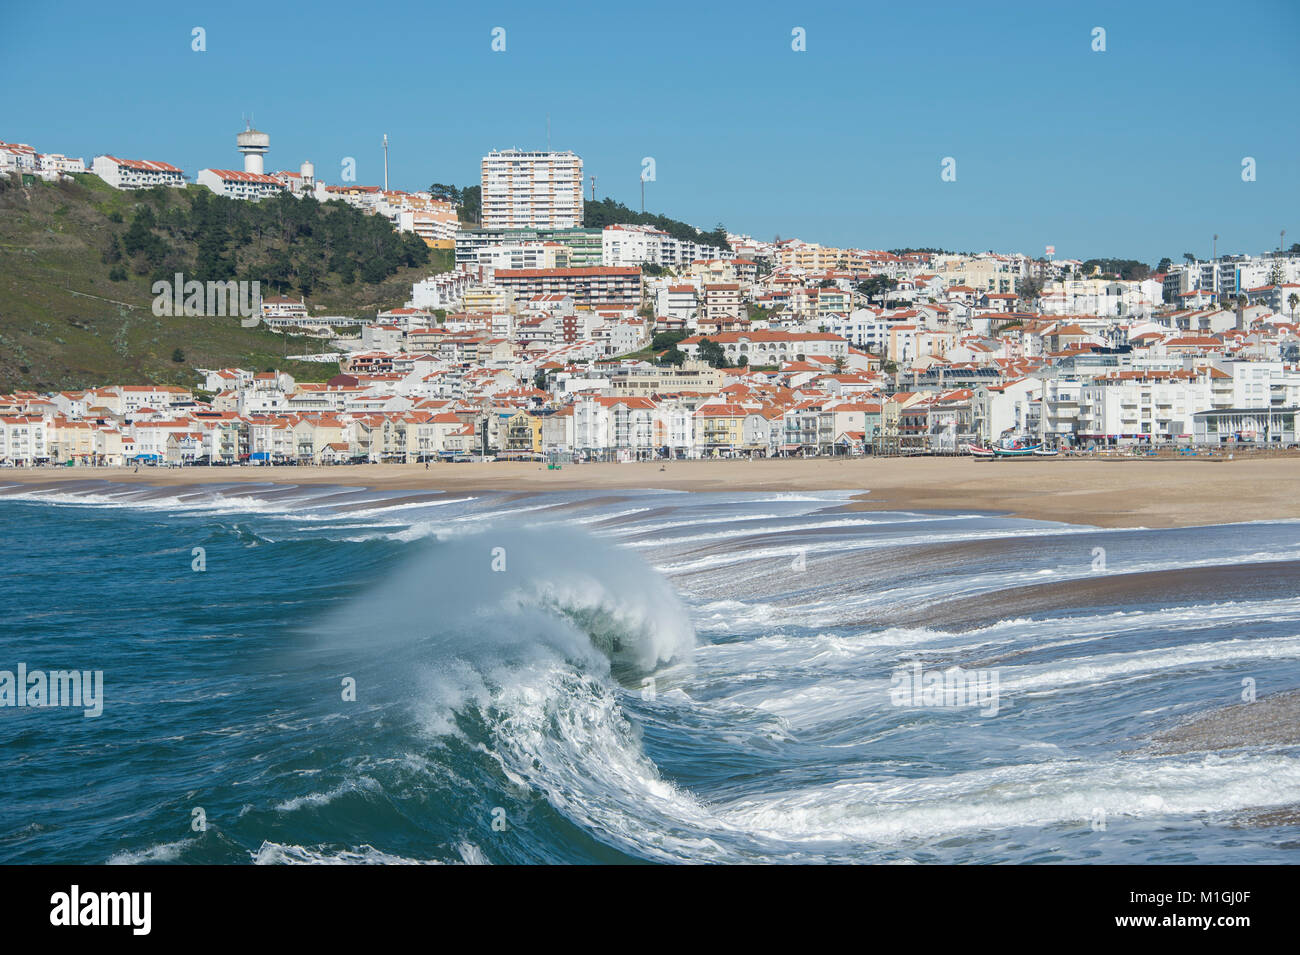 wave breaking onto the beach at Nazare, Portugal with the town in the background - Stock Image